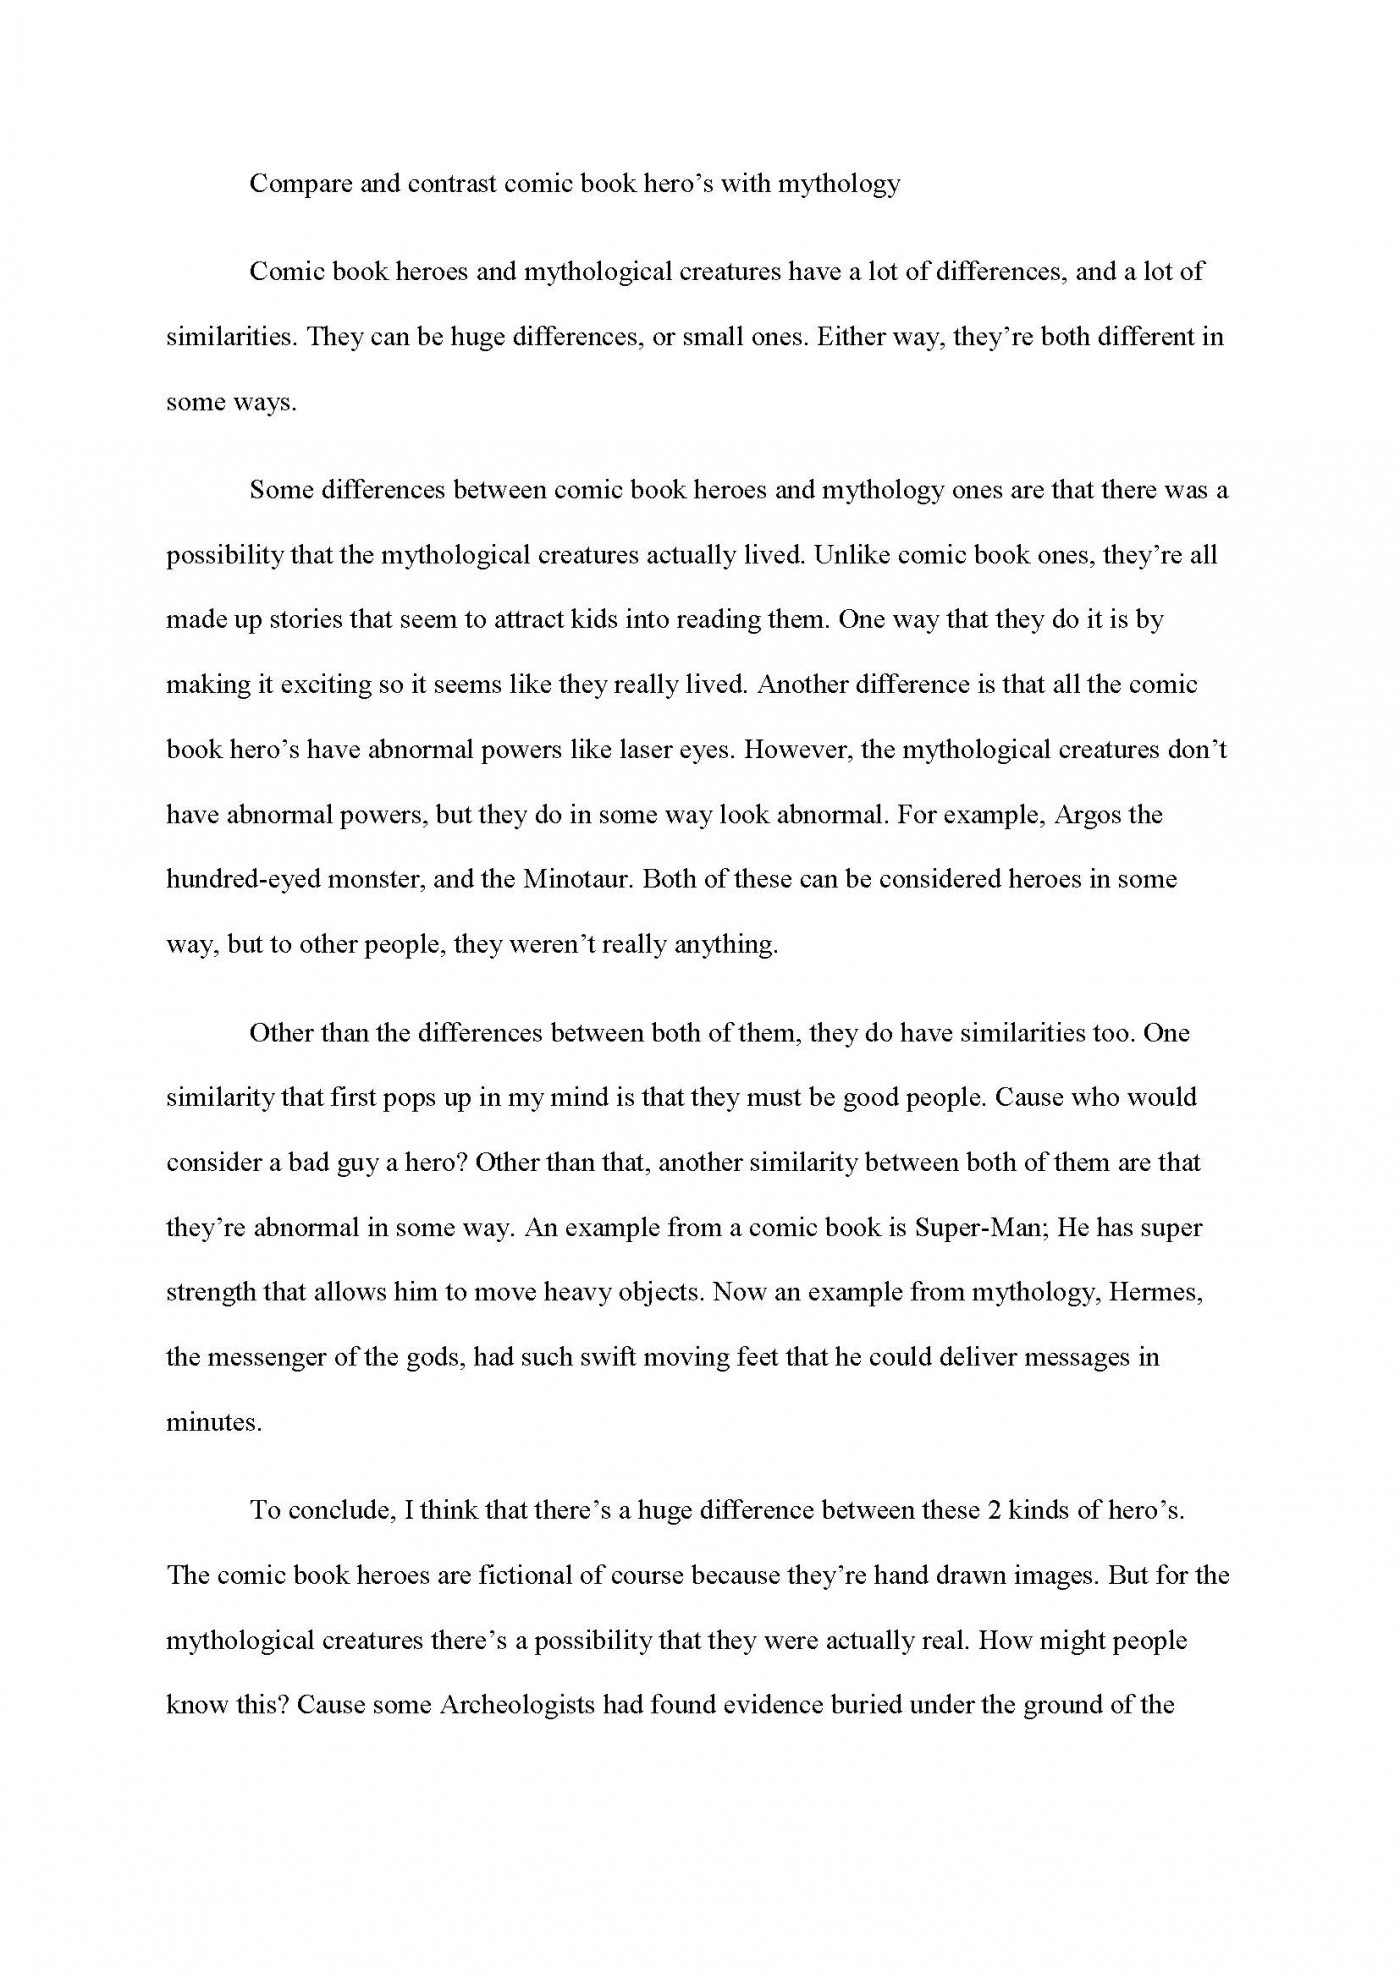 007 How To Outline Compare And Contrast Essay Sampleid8072 Awesome A Create An For 1400